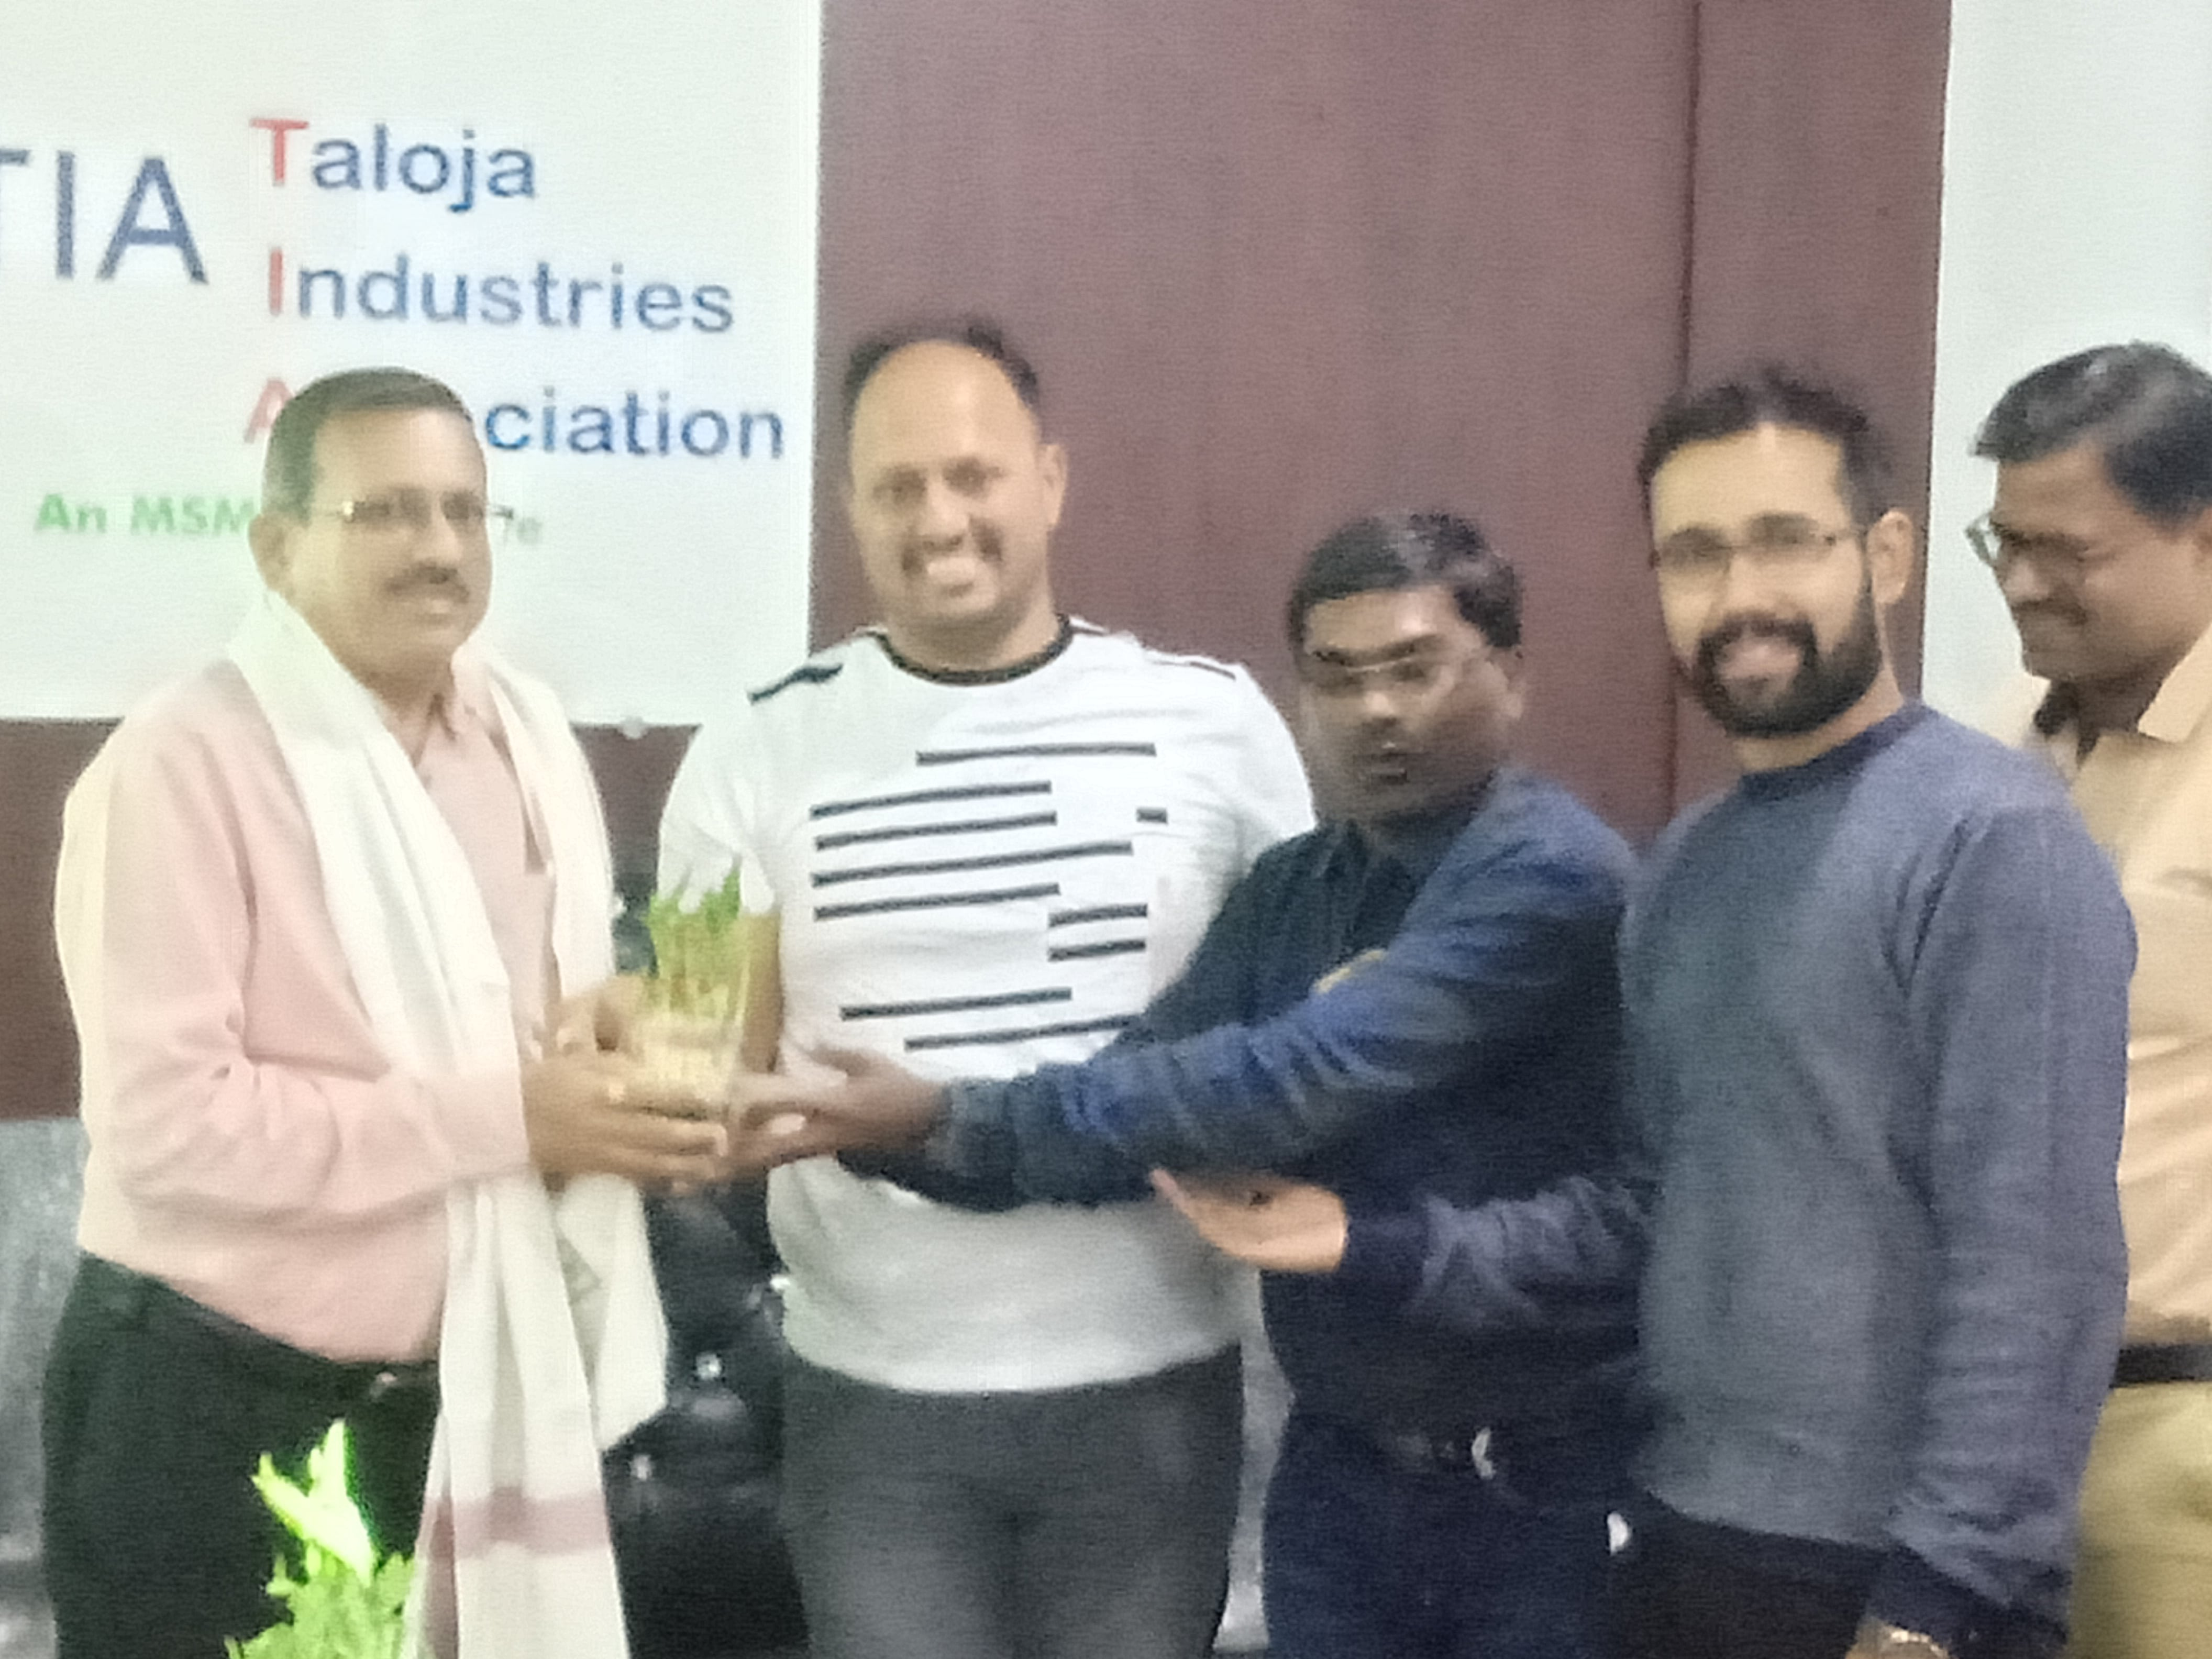 Taloja Industries Association